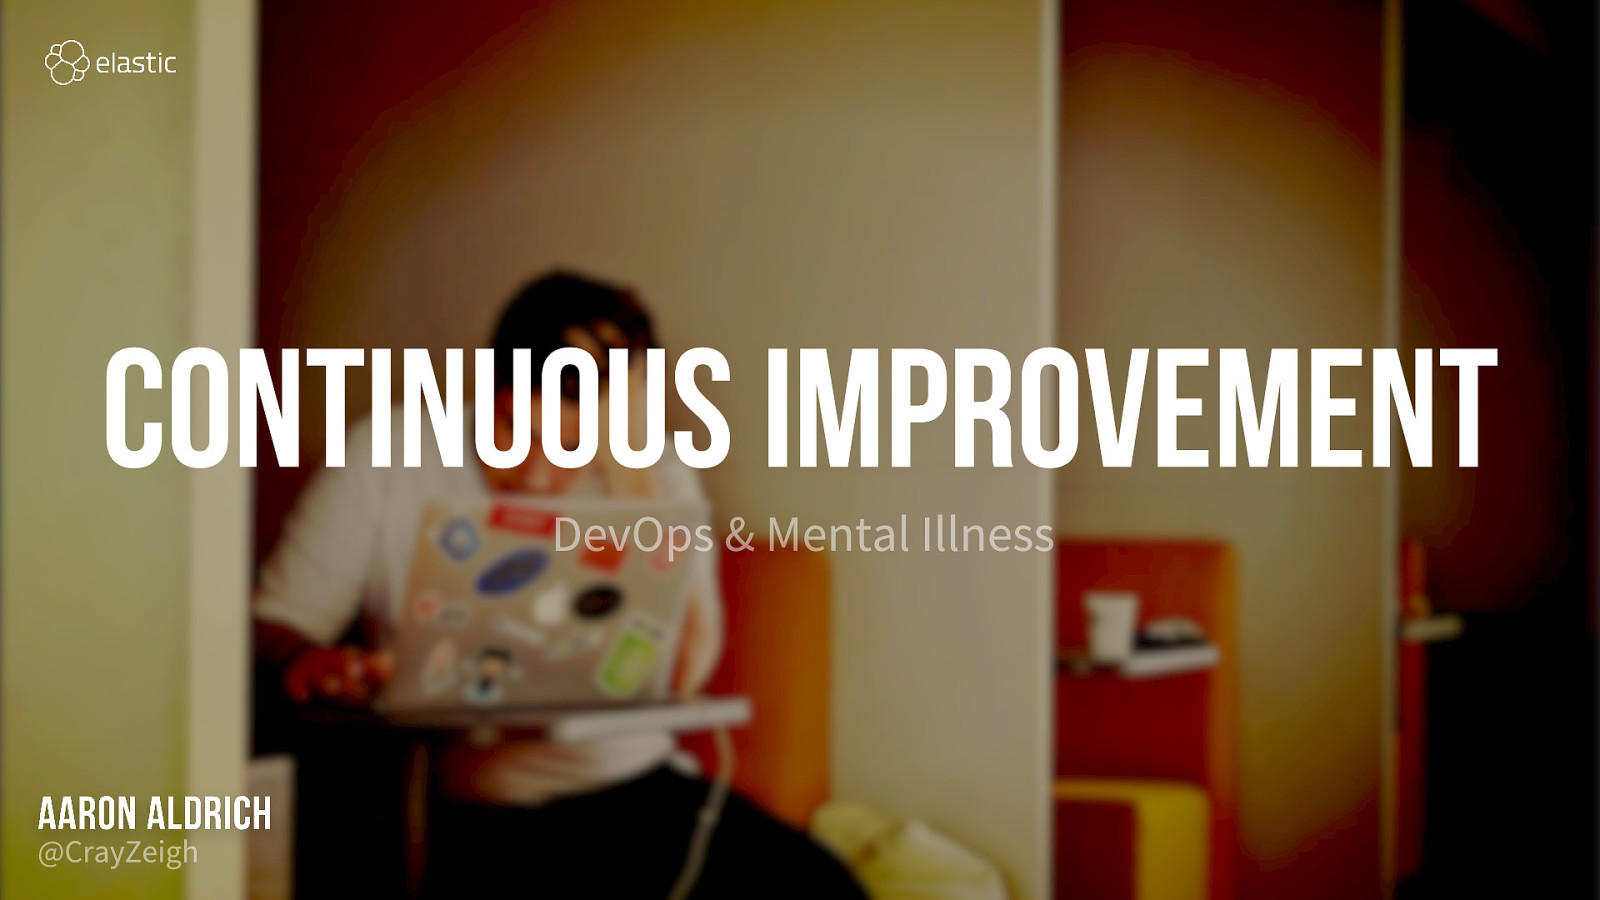 Continuous Improvement, DevOps and Mental Illness